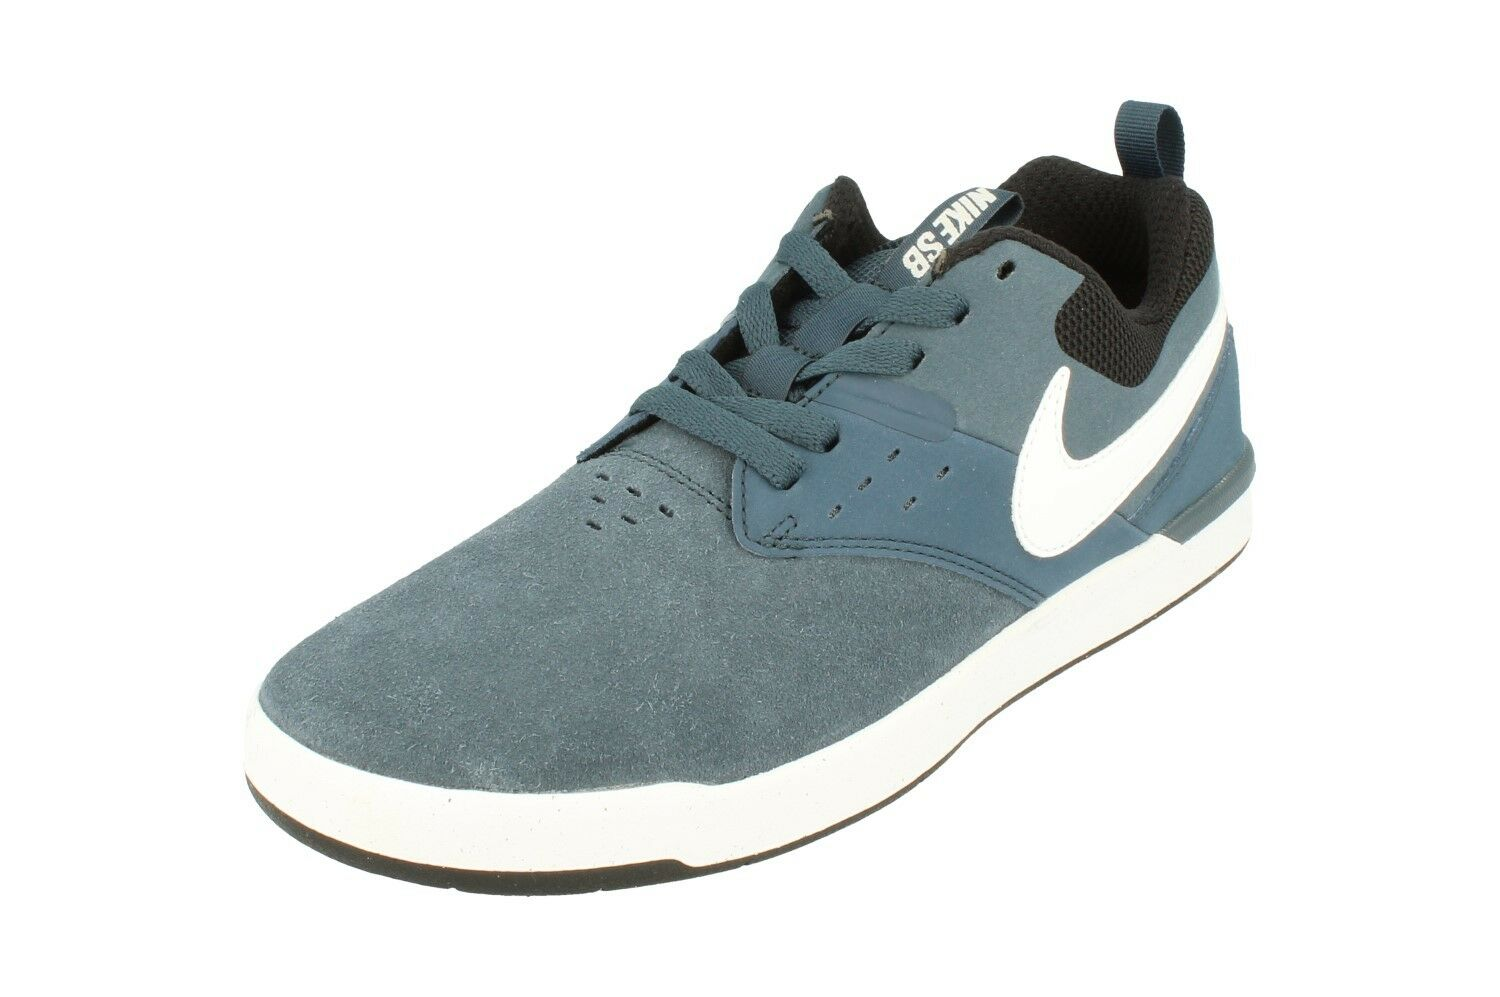 Nike Sb Zoom Ejecta Baskets hommes 749752 Baskets 410